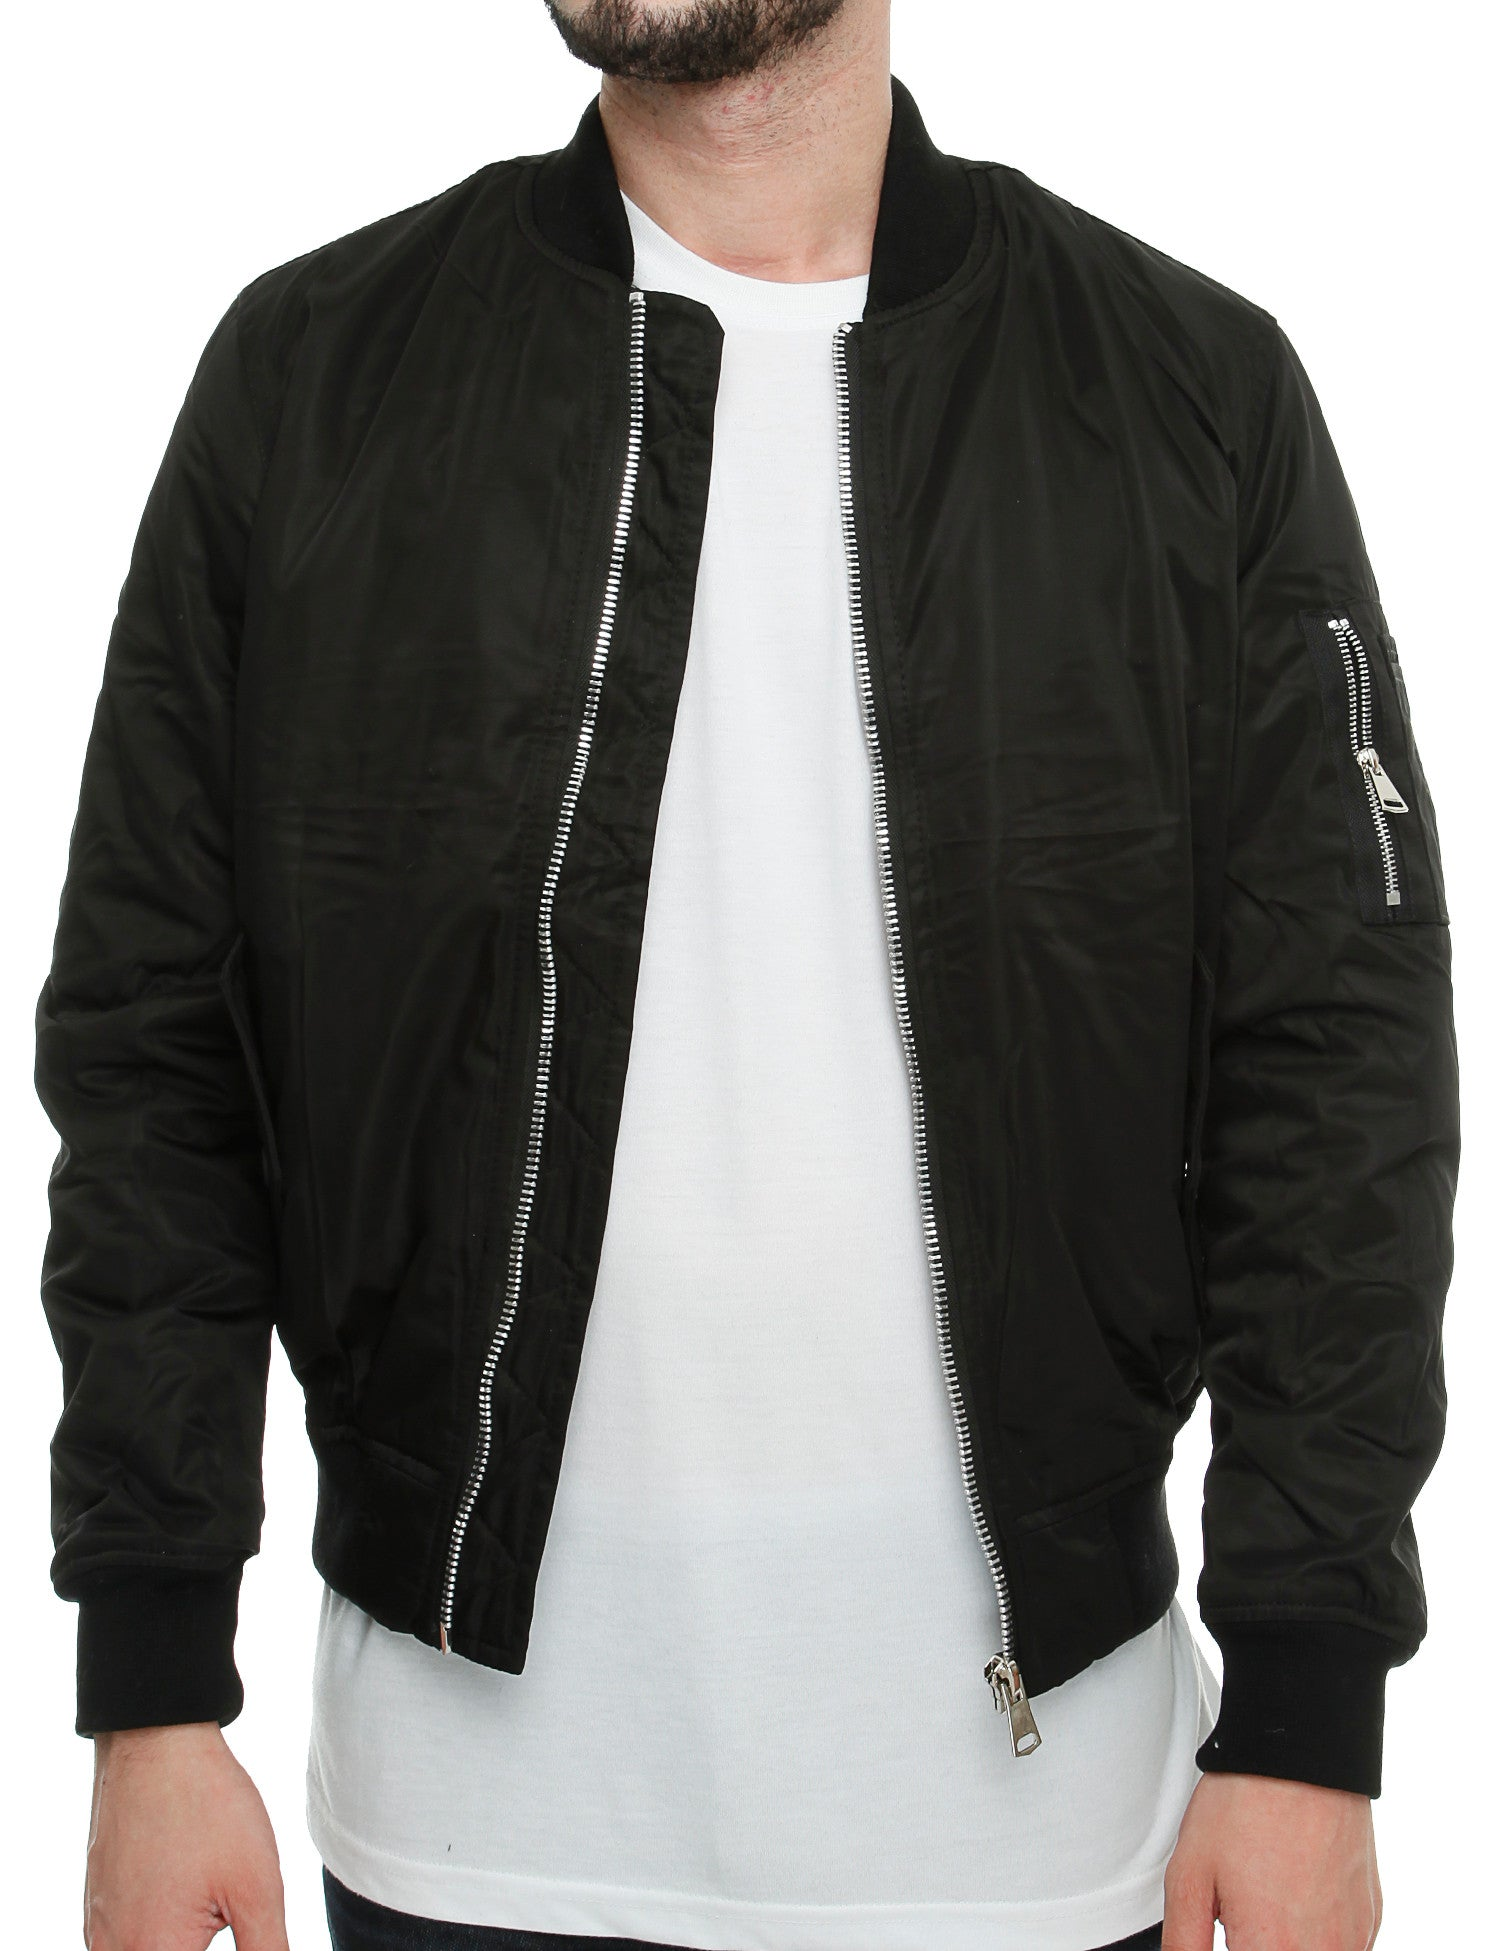 Bomber Jacket K-007  Black